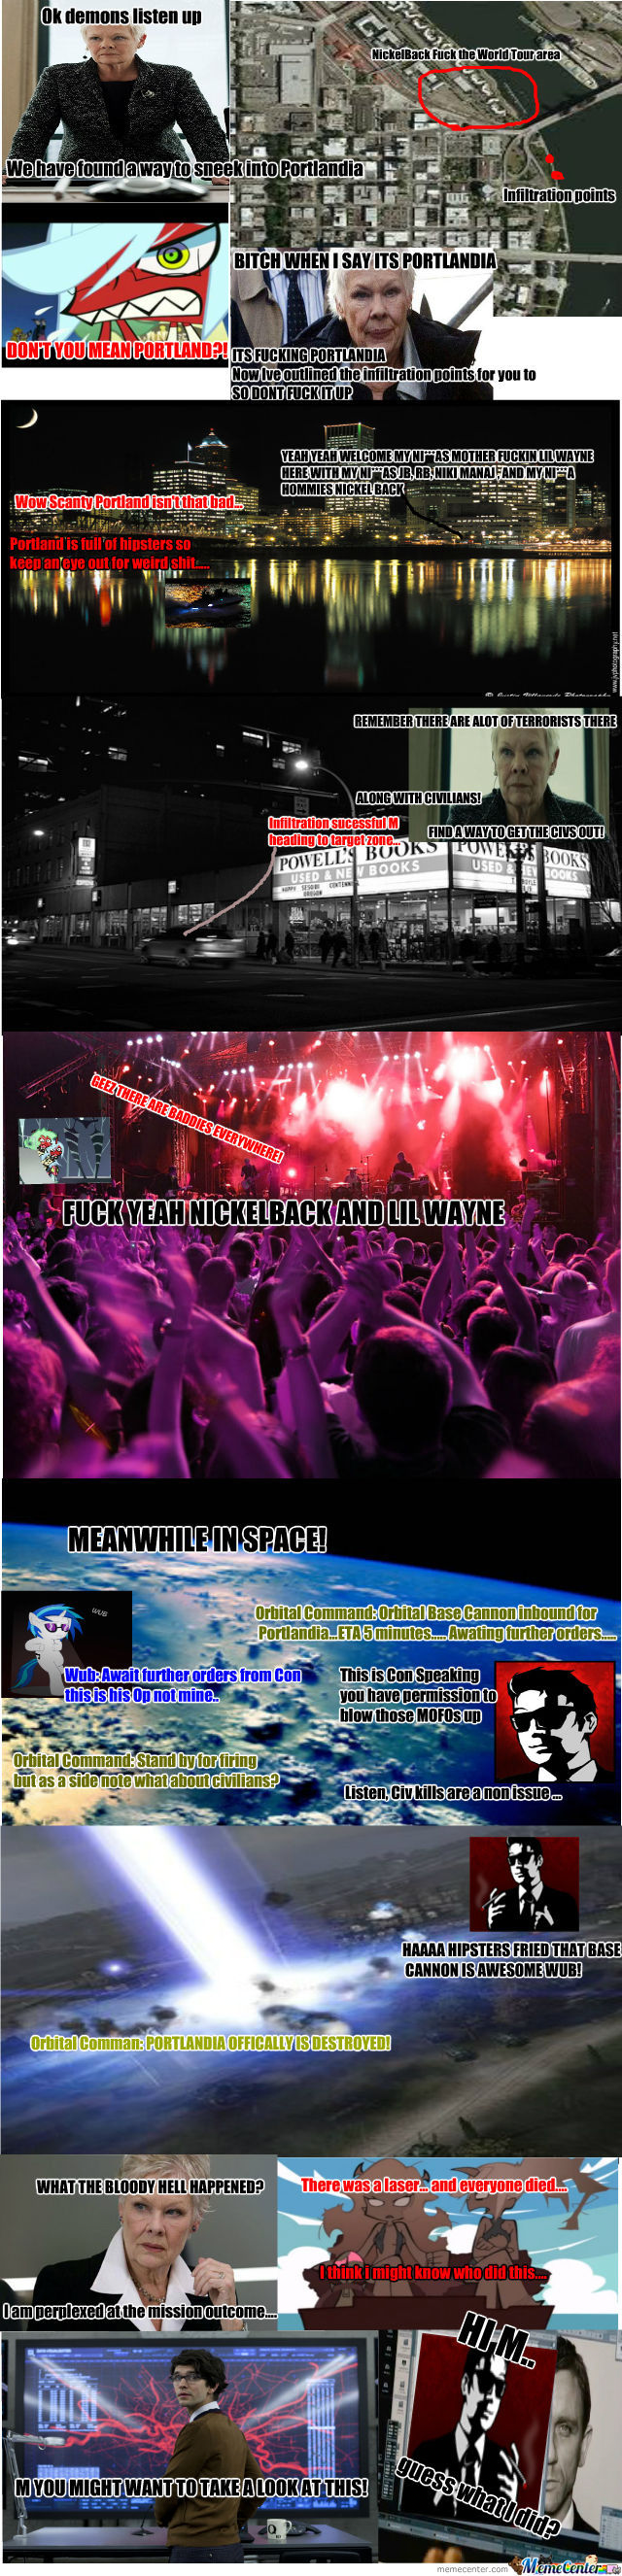 Adventures Of Kneesocks And Scanty: Nickelback Fuck The World Tour 2013: Part 2 With Con Artist!